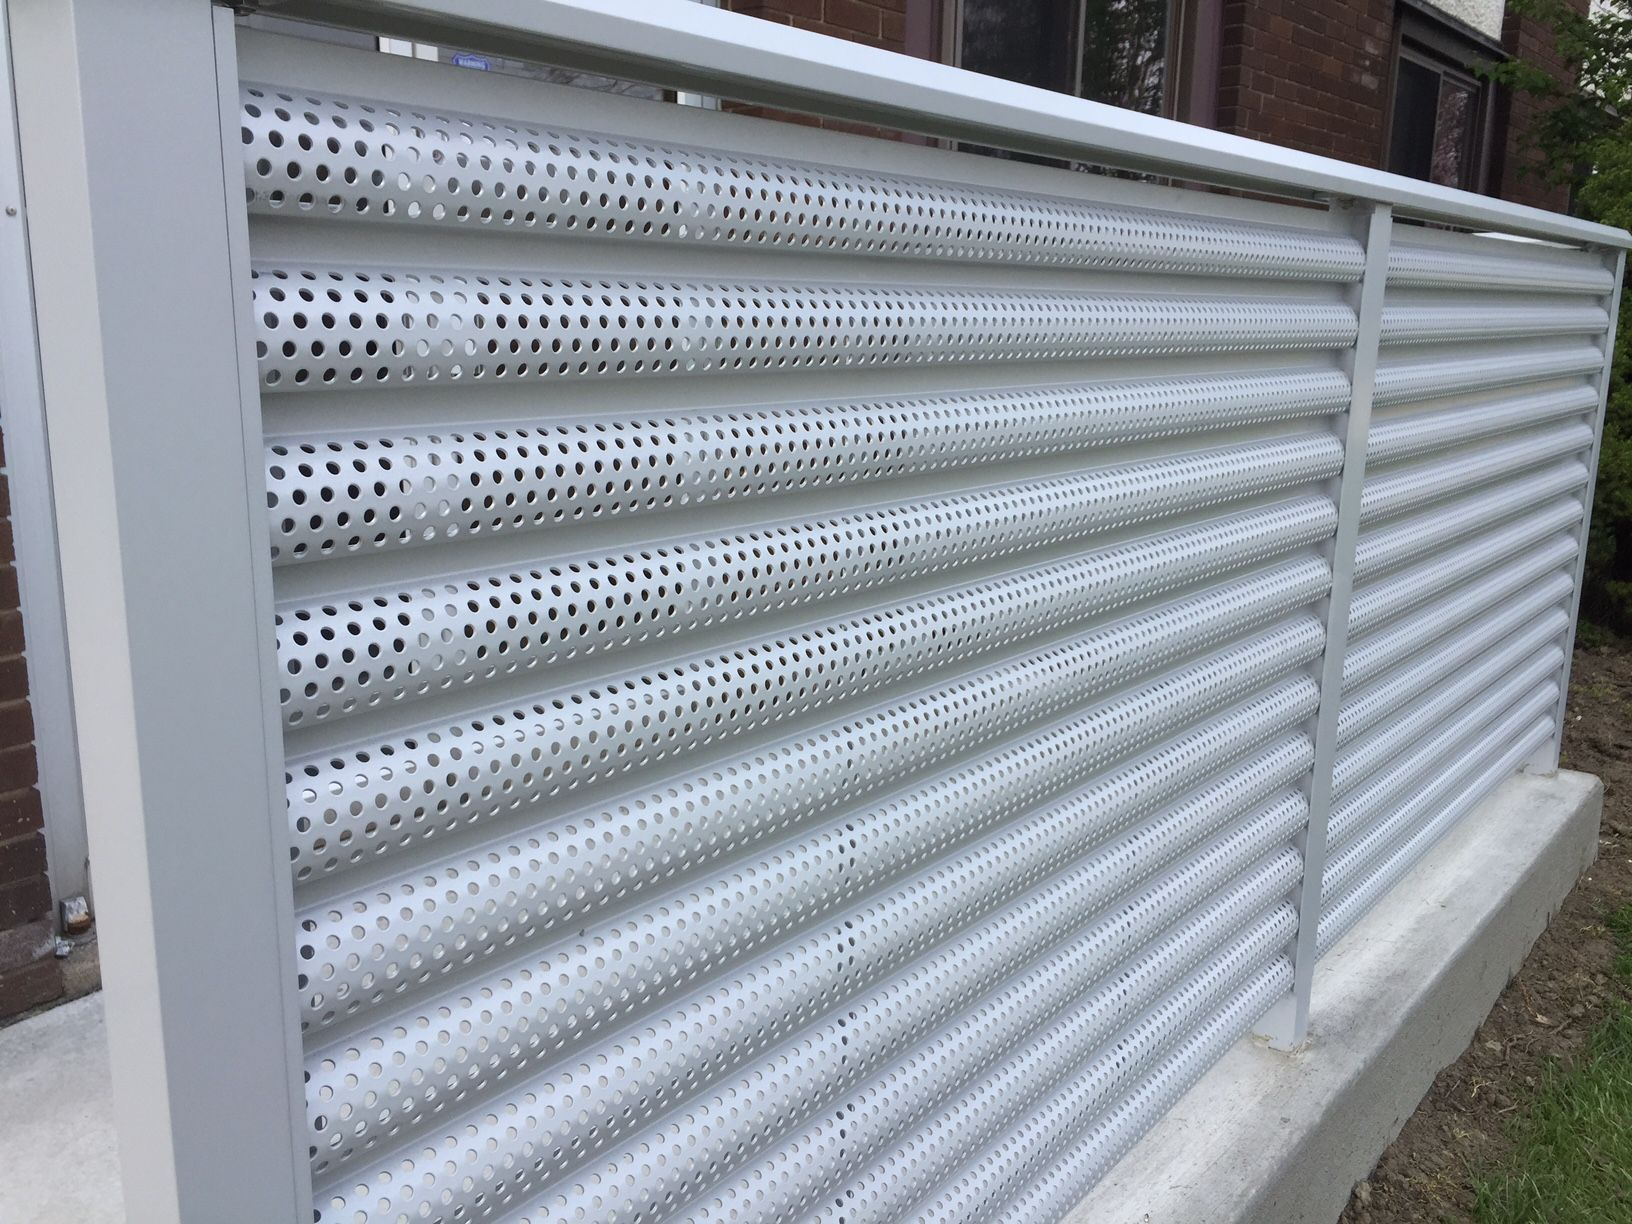 Aluminum Perforated Fence Ametco Manufacturing In 2020 Metal Fence Panels Perforated Metal House Gate Design